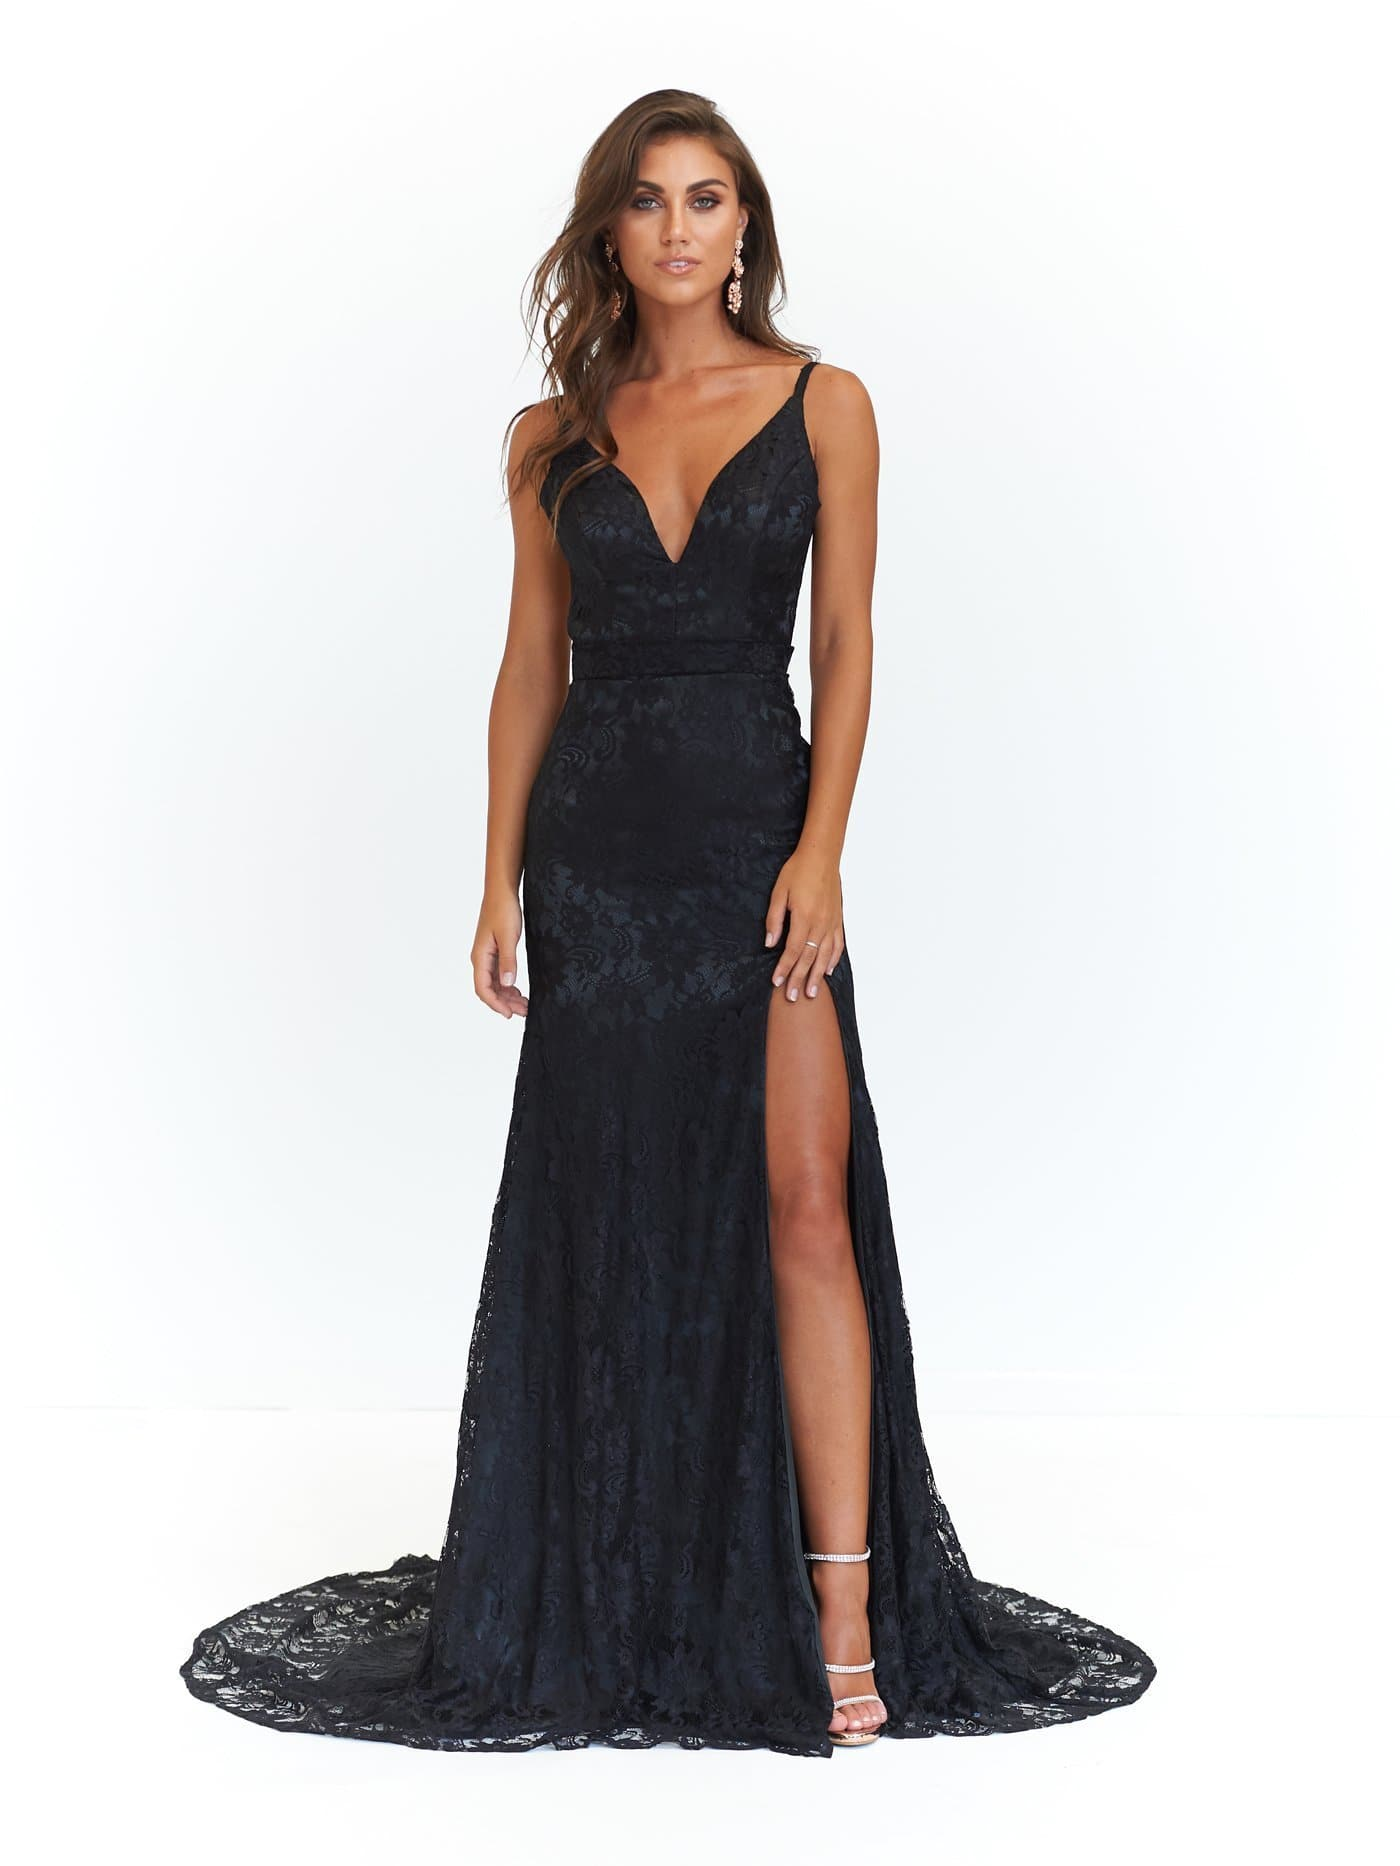 Ayla Formal Dress - Black Lace V Neck Mermaid Gown with Split